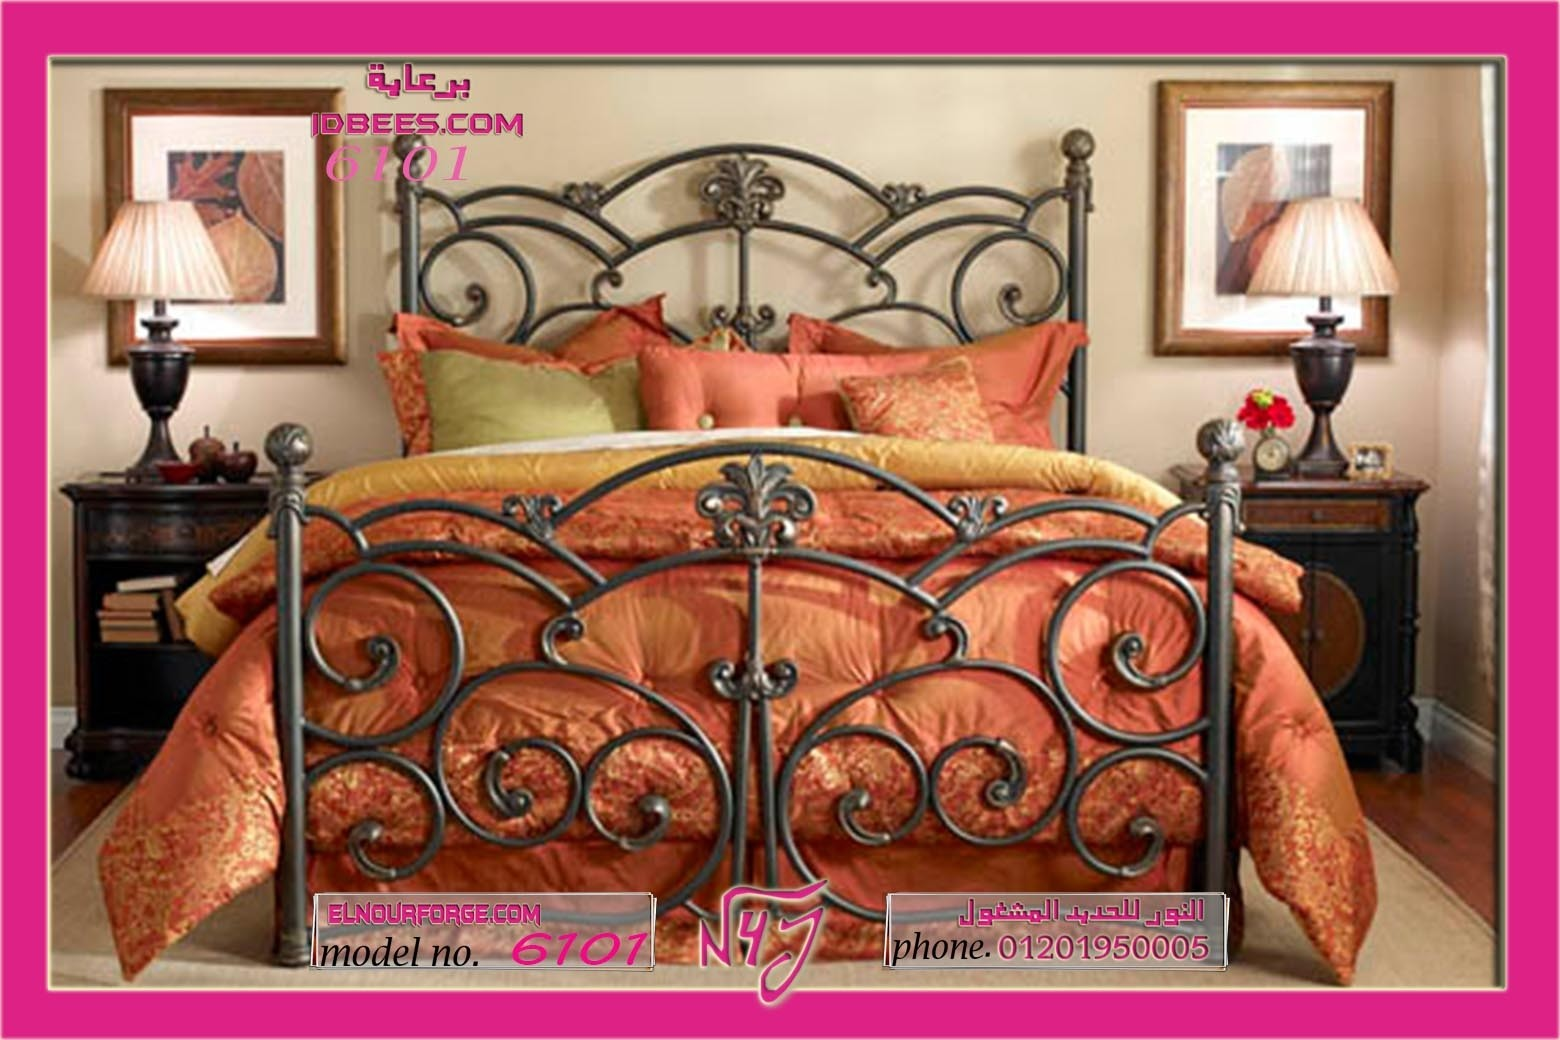 Wrought Iron King Size Headboards - Foter